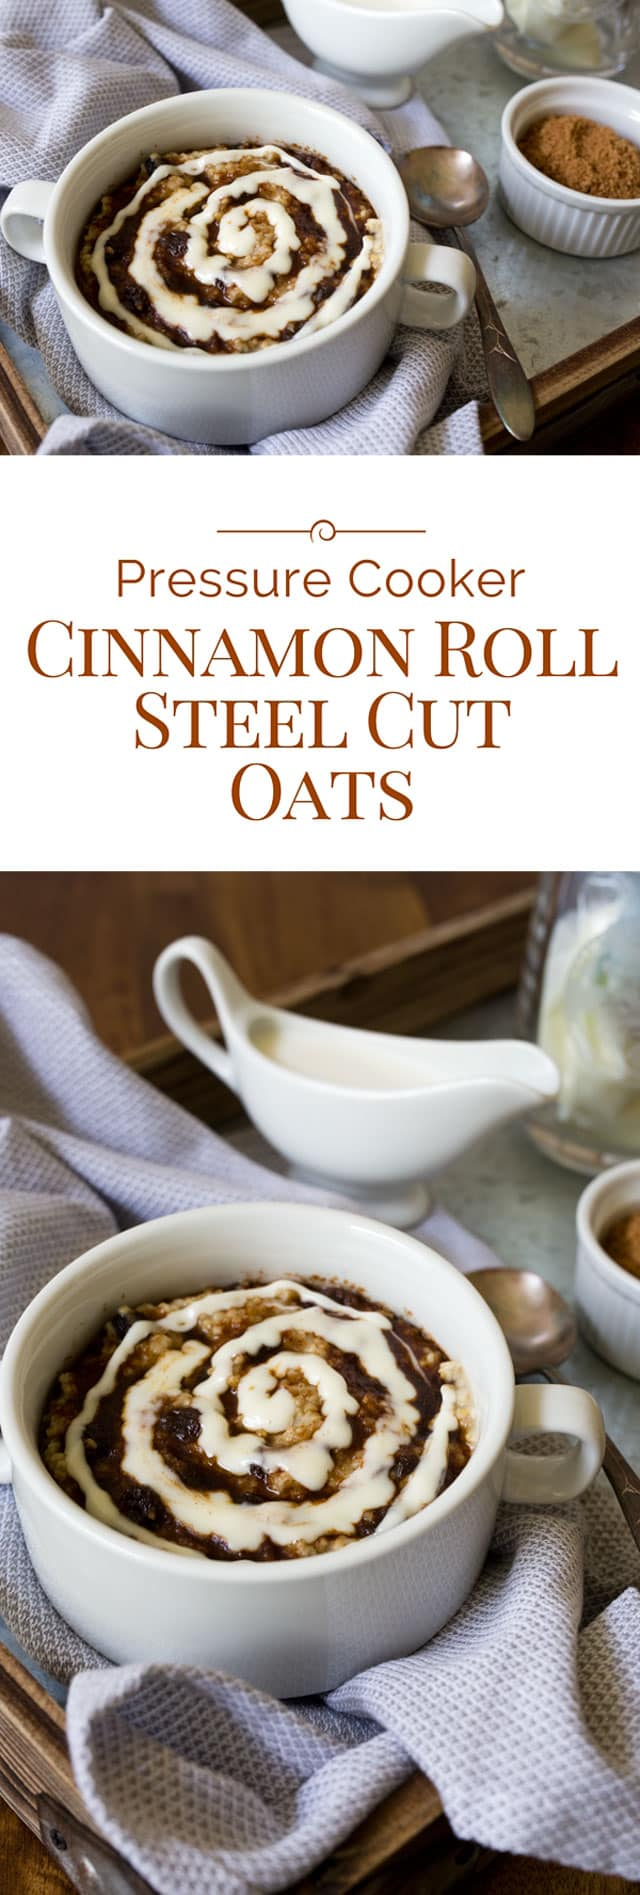 Cinnamon roll steel cut oats is a delicious and sweet baked oatmeal topped with brown sugar cinnamon and a swirl of cream cheese icing, made in an Instant Pot electric pressure cooker. Why have plain boring oatmeal when you can make this baked cinnamon roll steel cut oatmeal recipe? #instantpot #pressurecooker #pressurecooking #breakfast #oatmeal